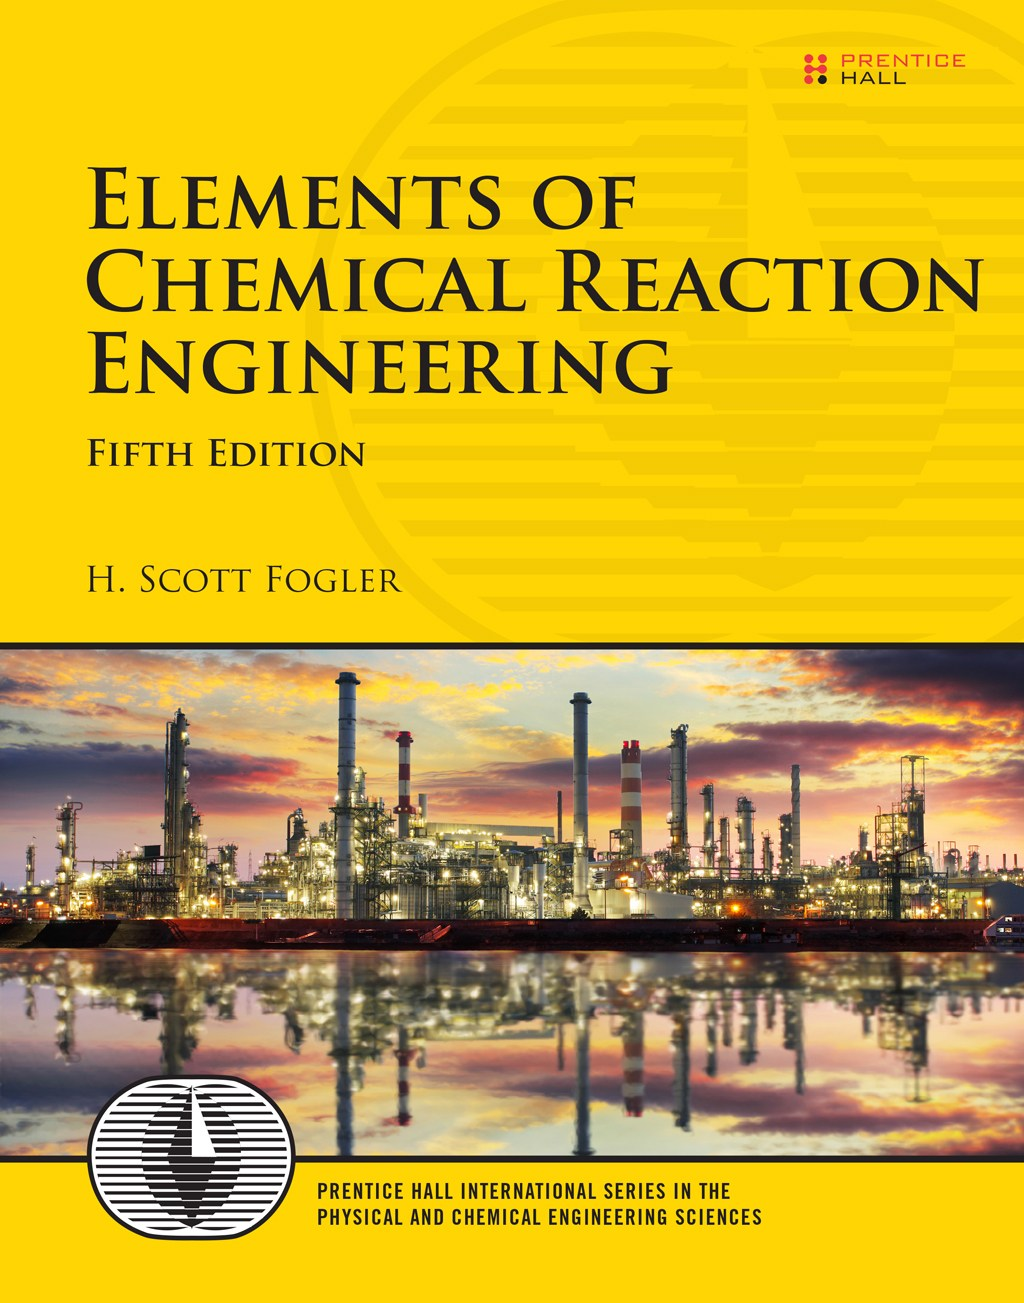 Elements of Chemical Reaction Engineering, 5th Edition